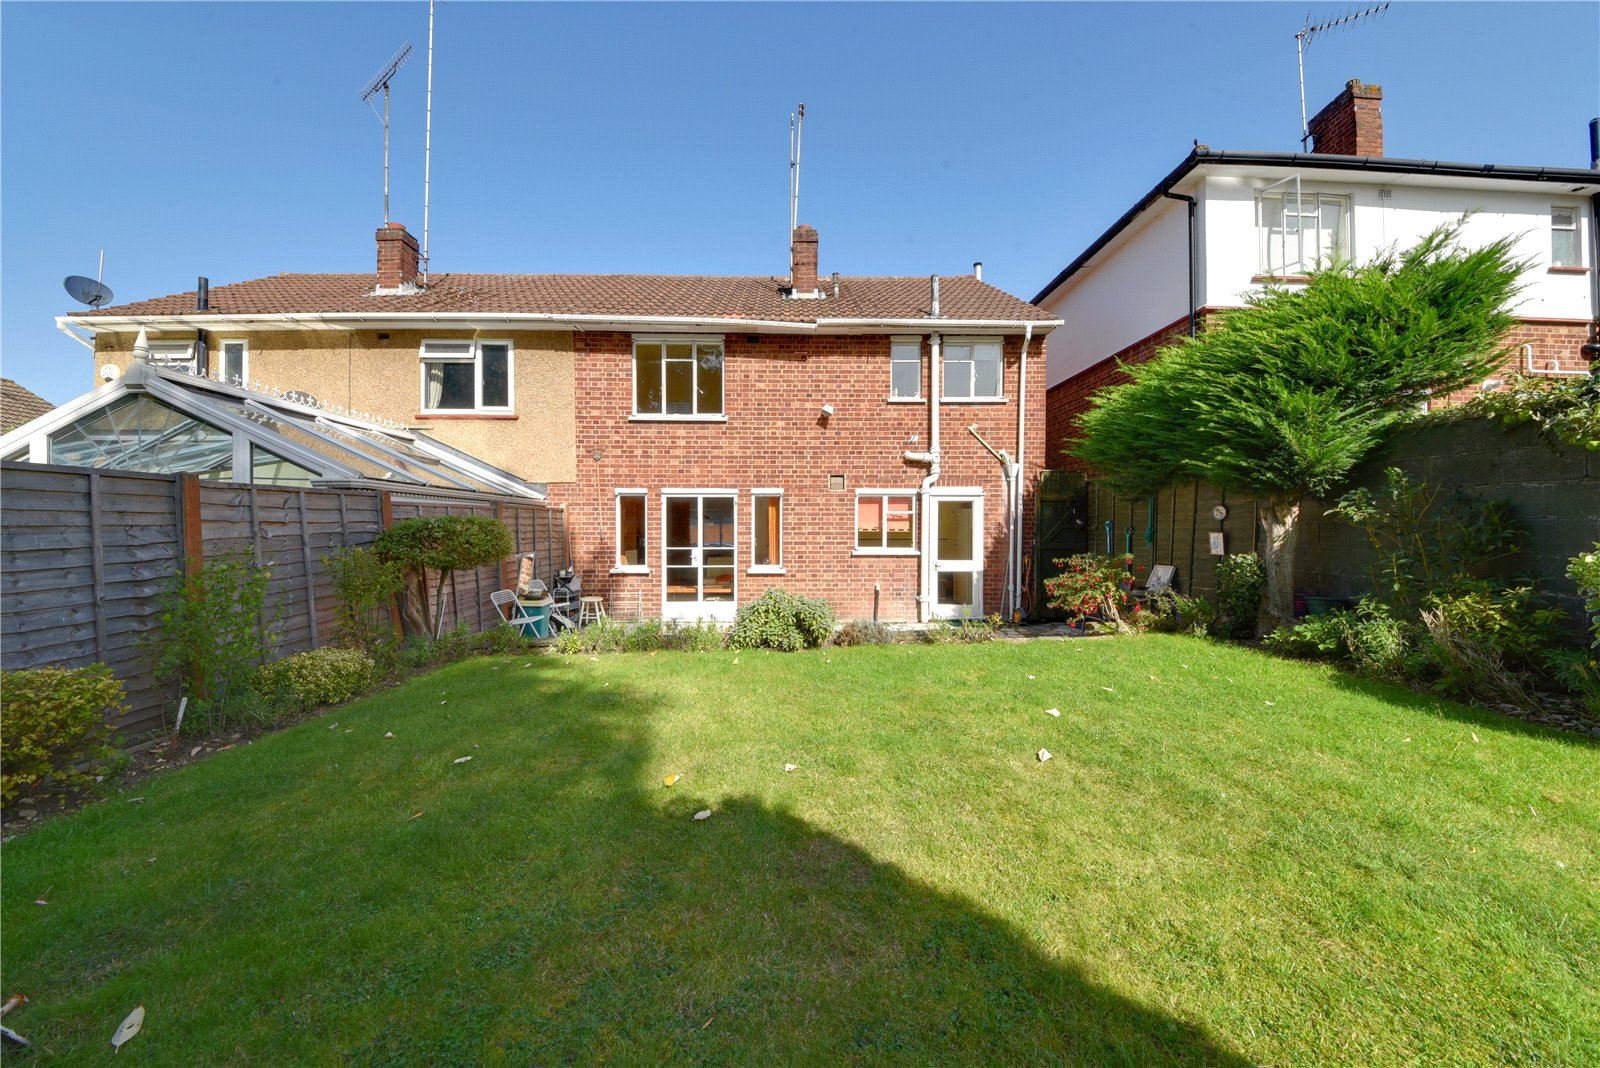 3 bed house for sale in West Finchley, N3 1PB 5